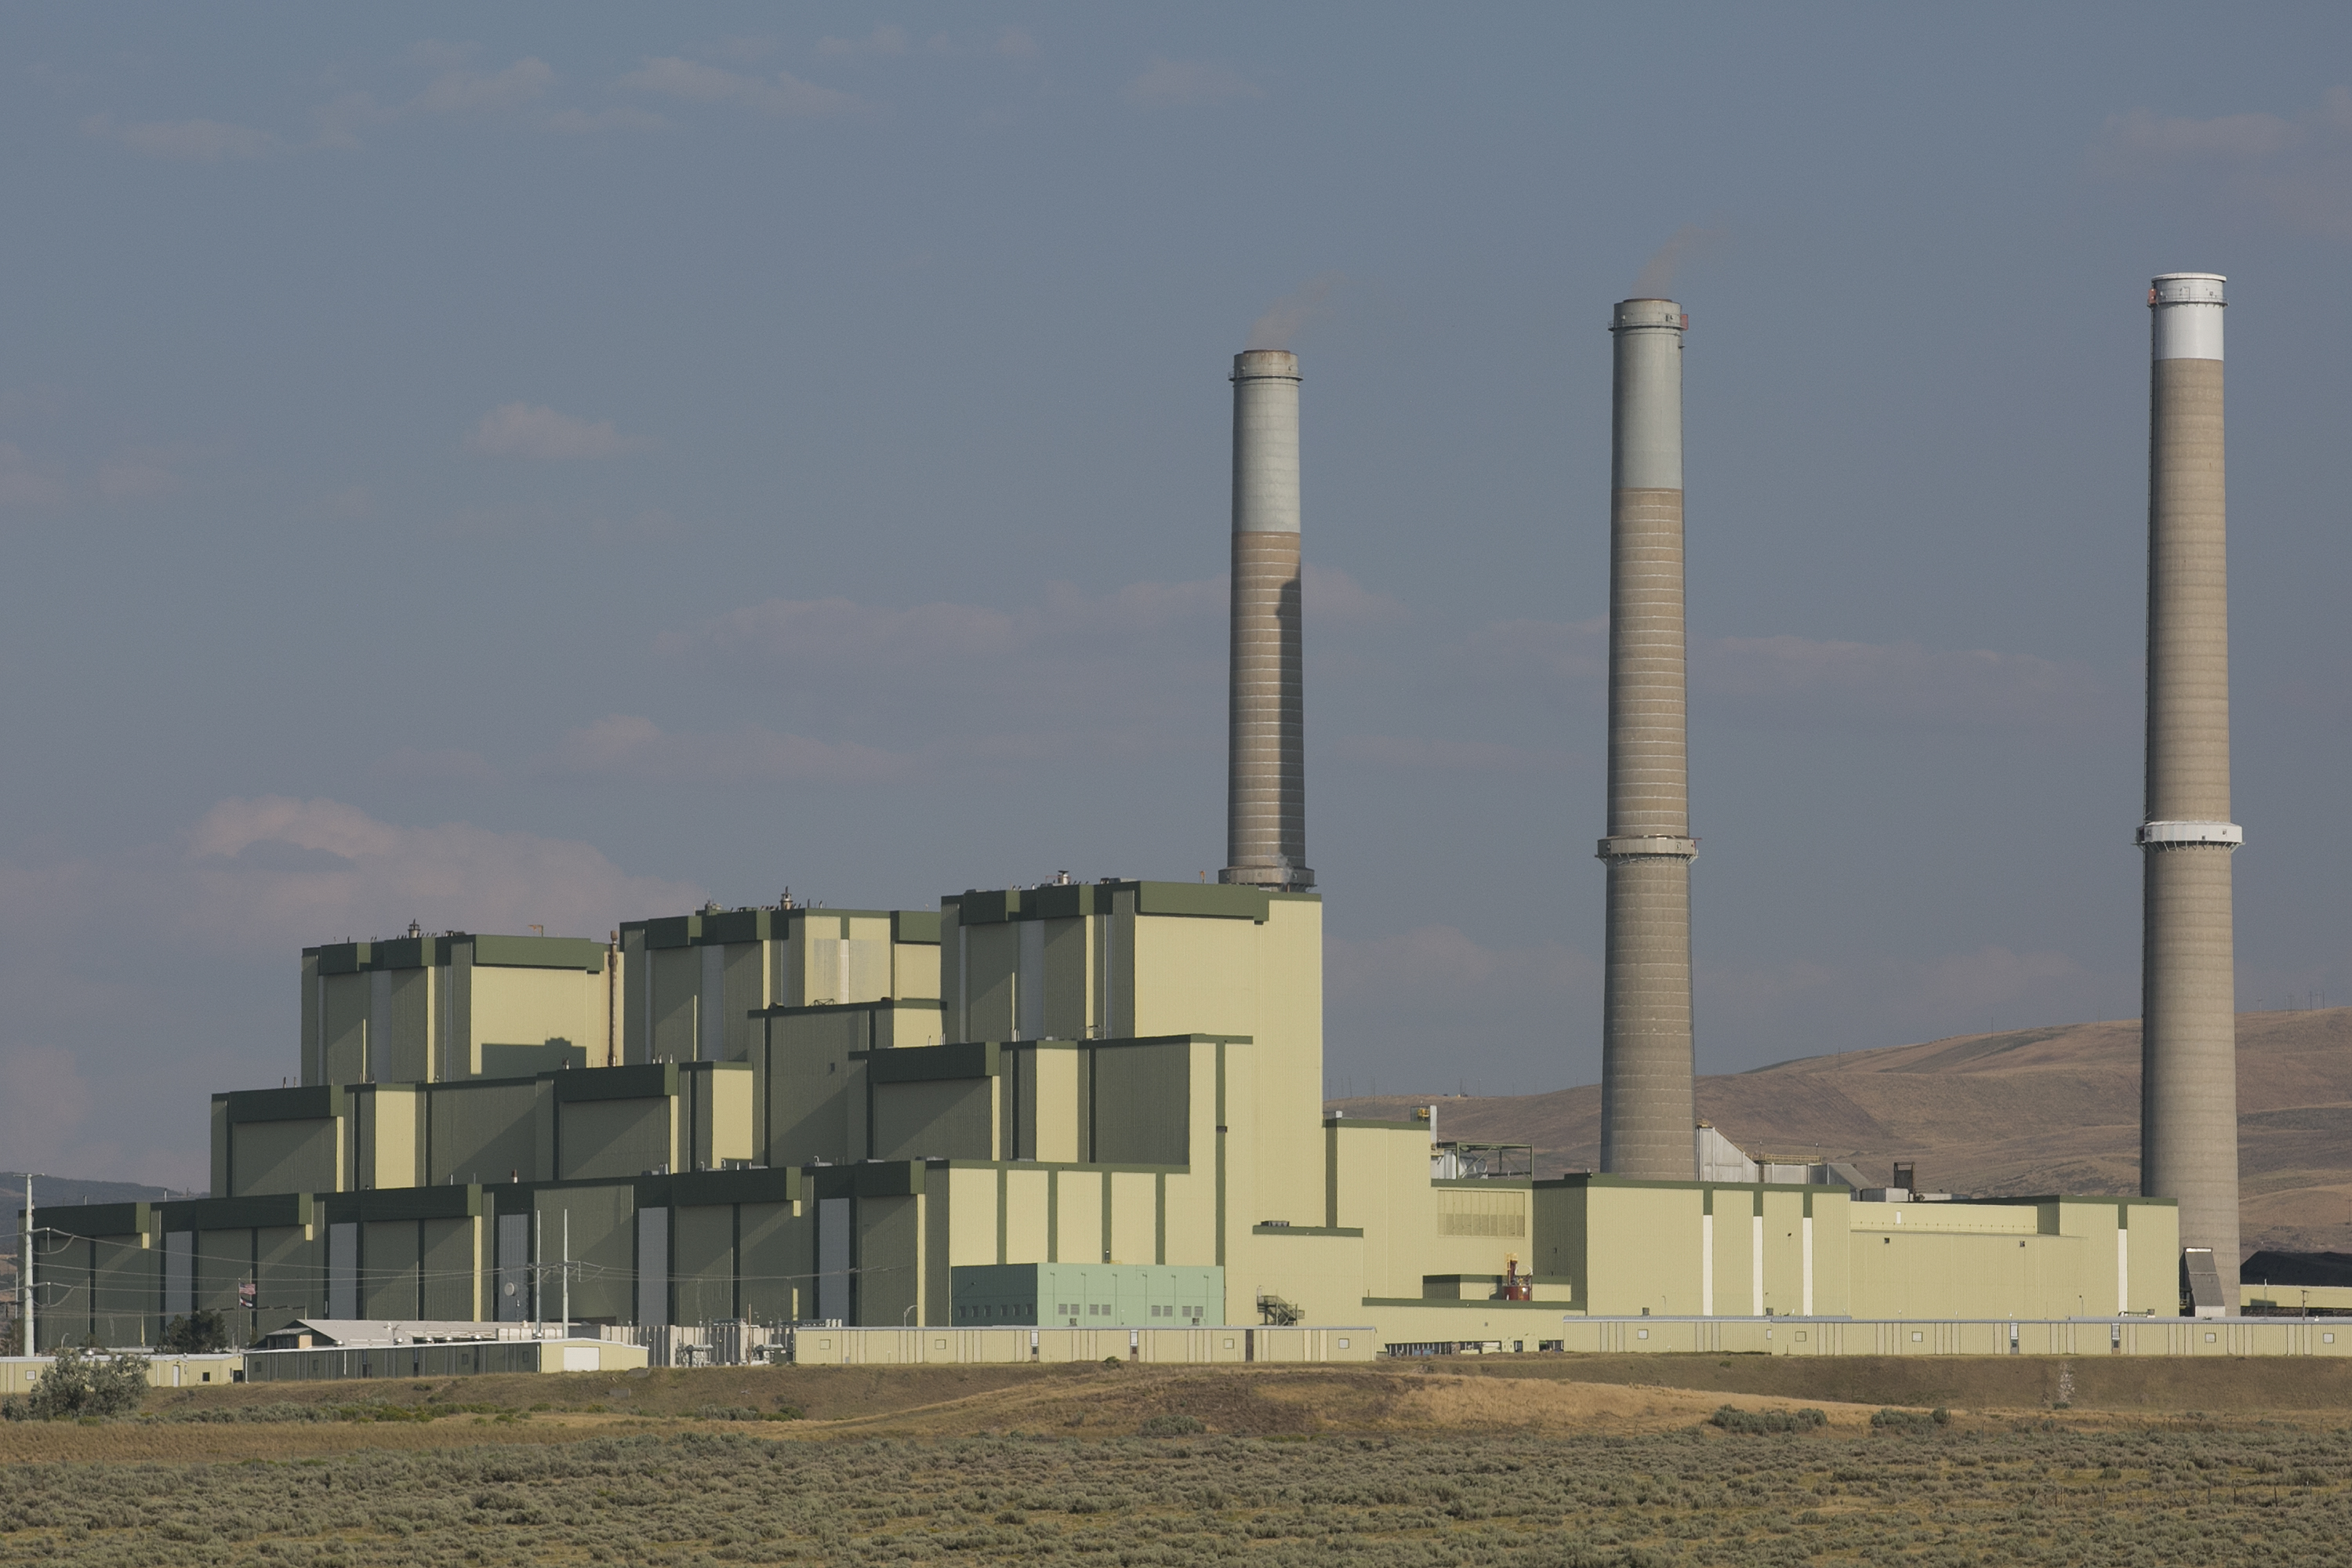 Delta-Montrose Withdraws From Tri-State, Resolving An Energy